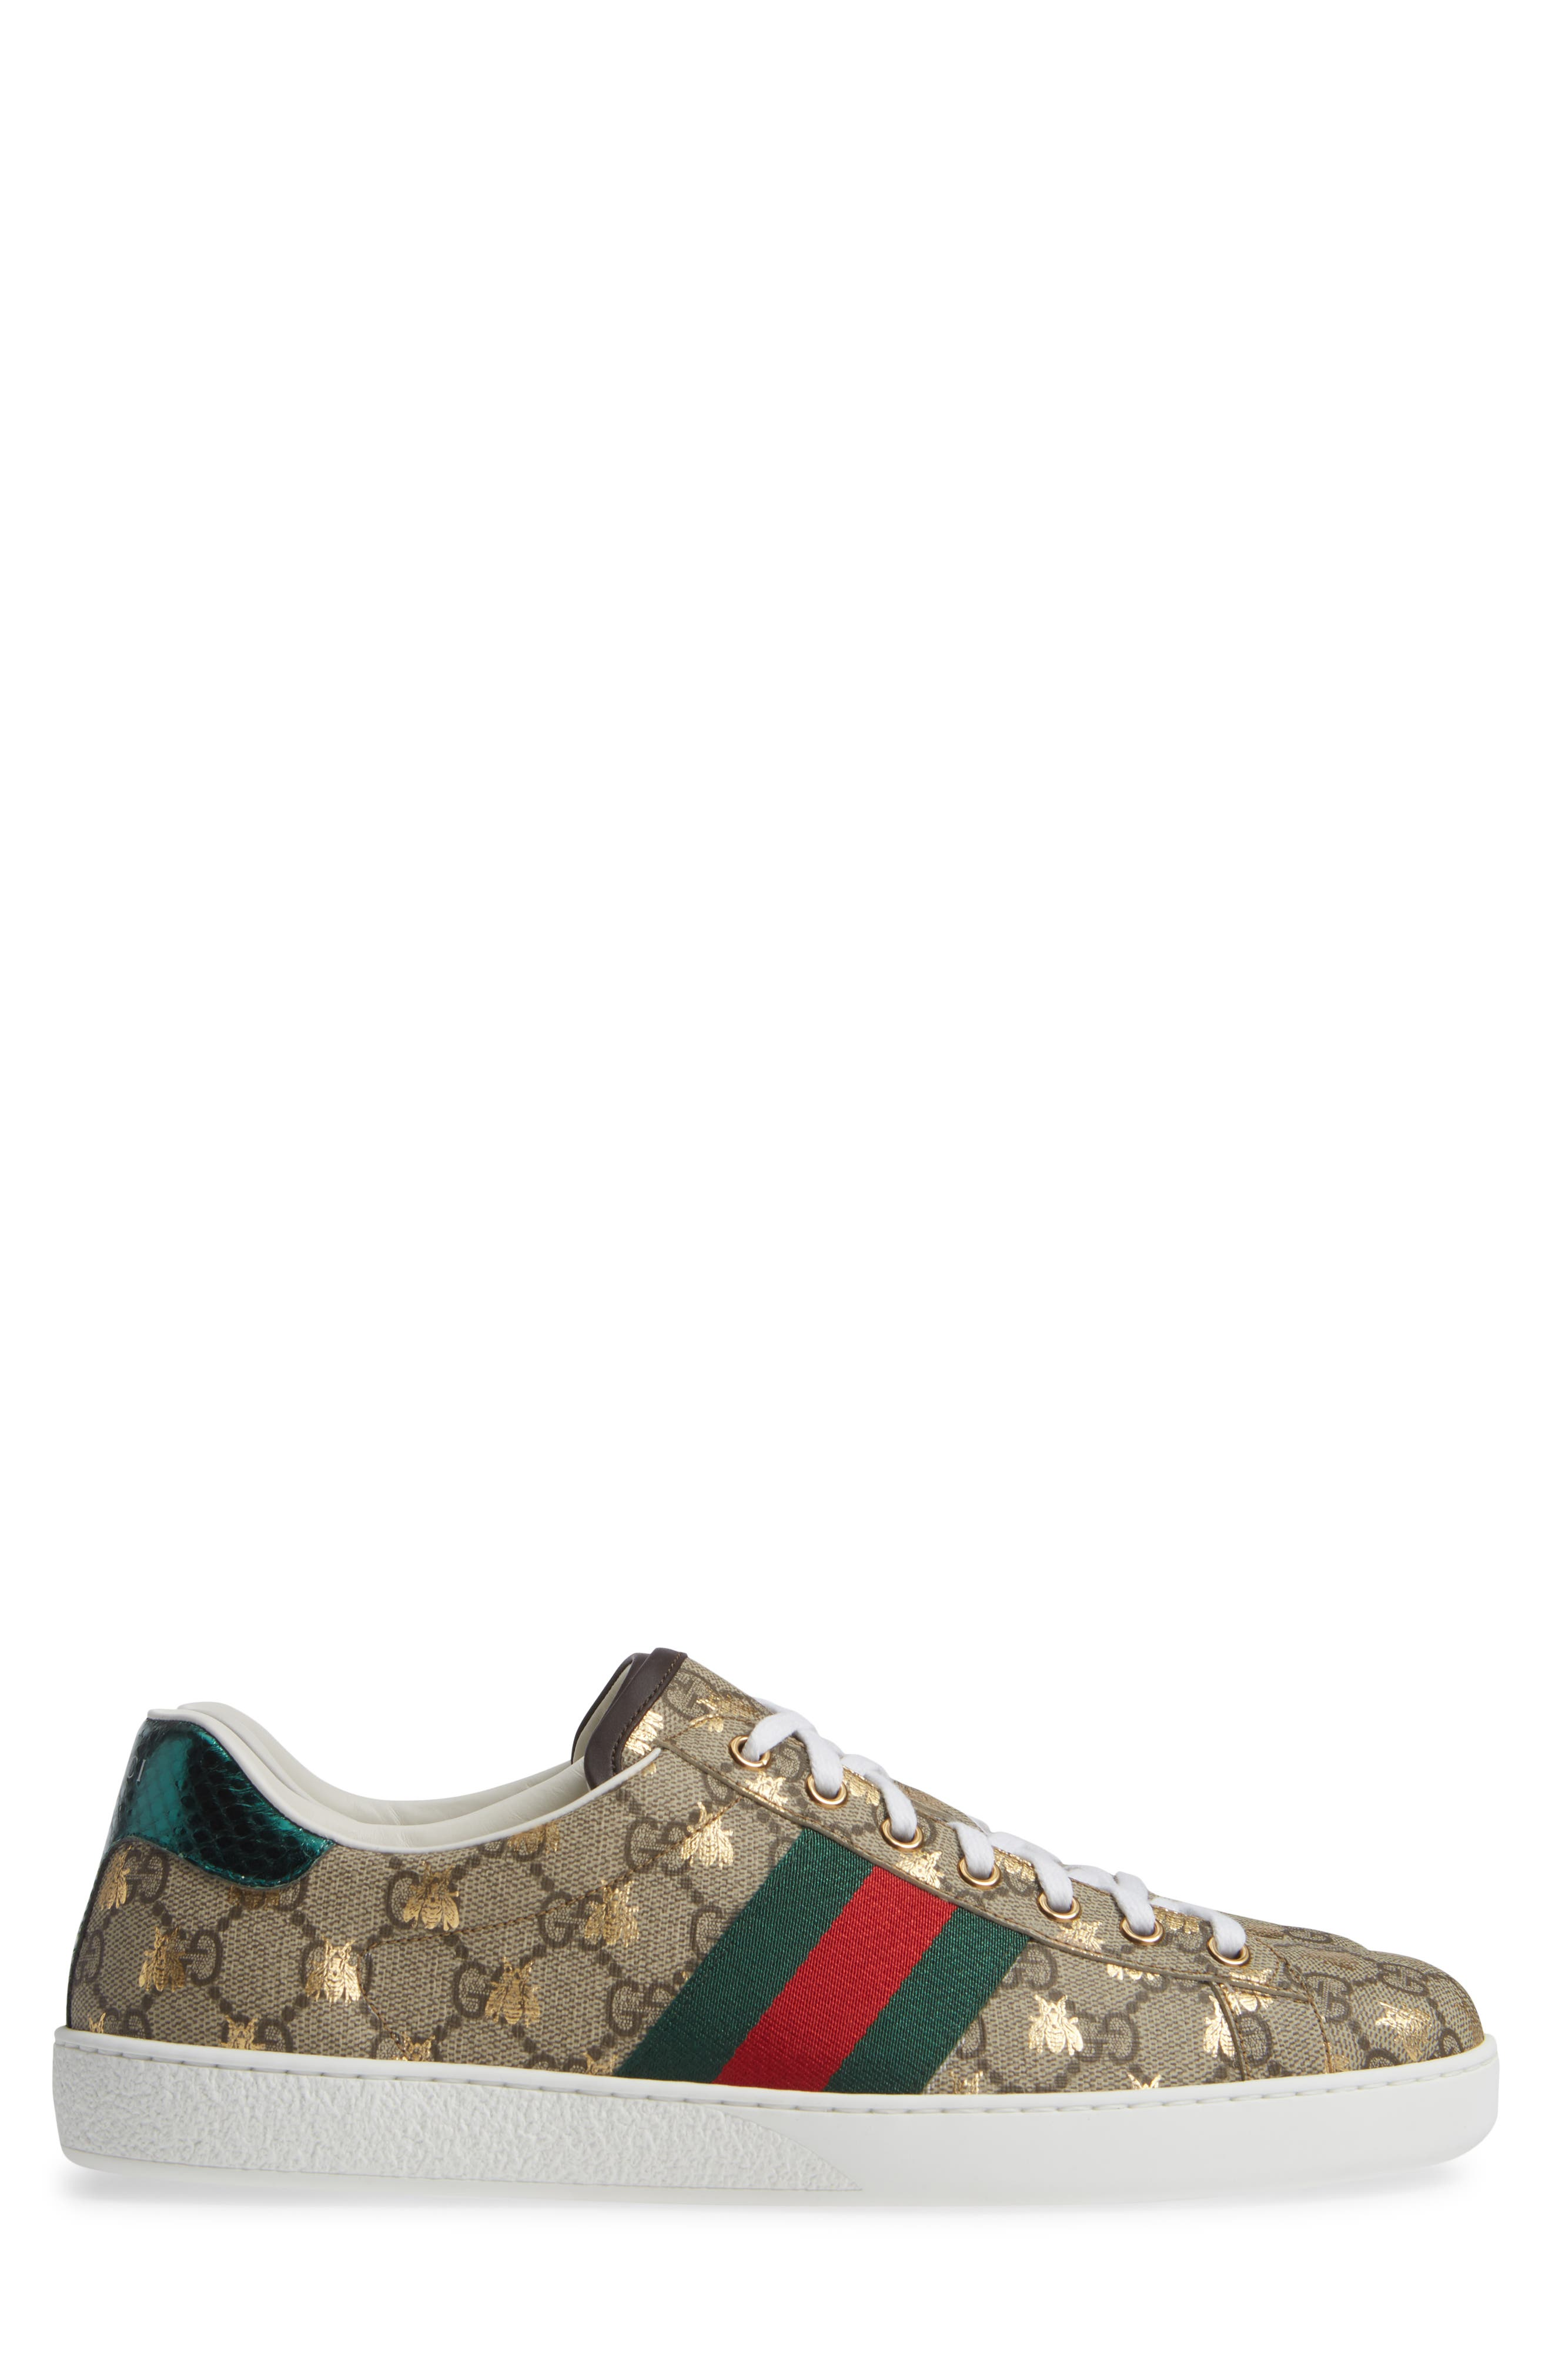 GUCCI, New Ace GG Supreme Sneaker, Alternate thumbnail 3, color, BEIGE/ GOLD